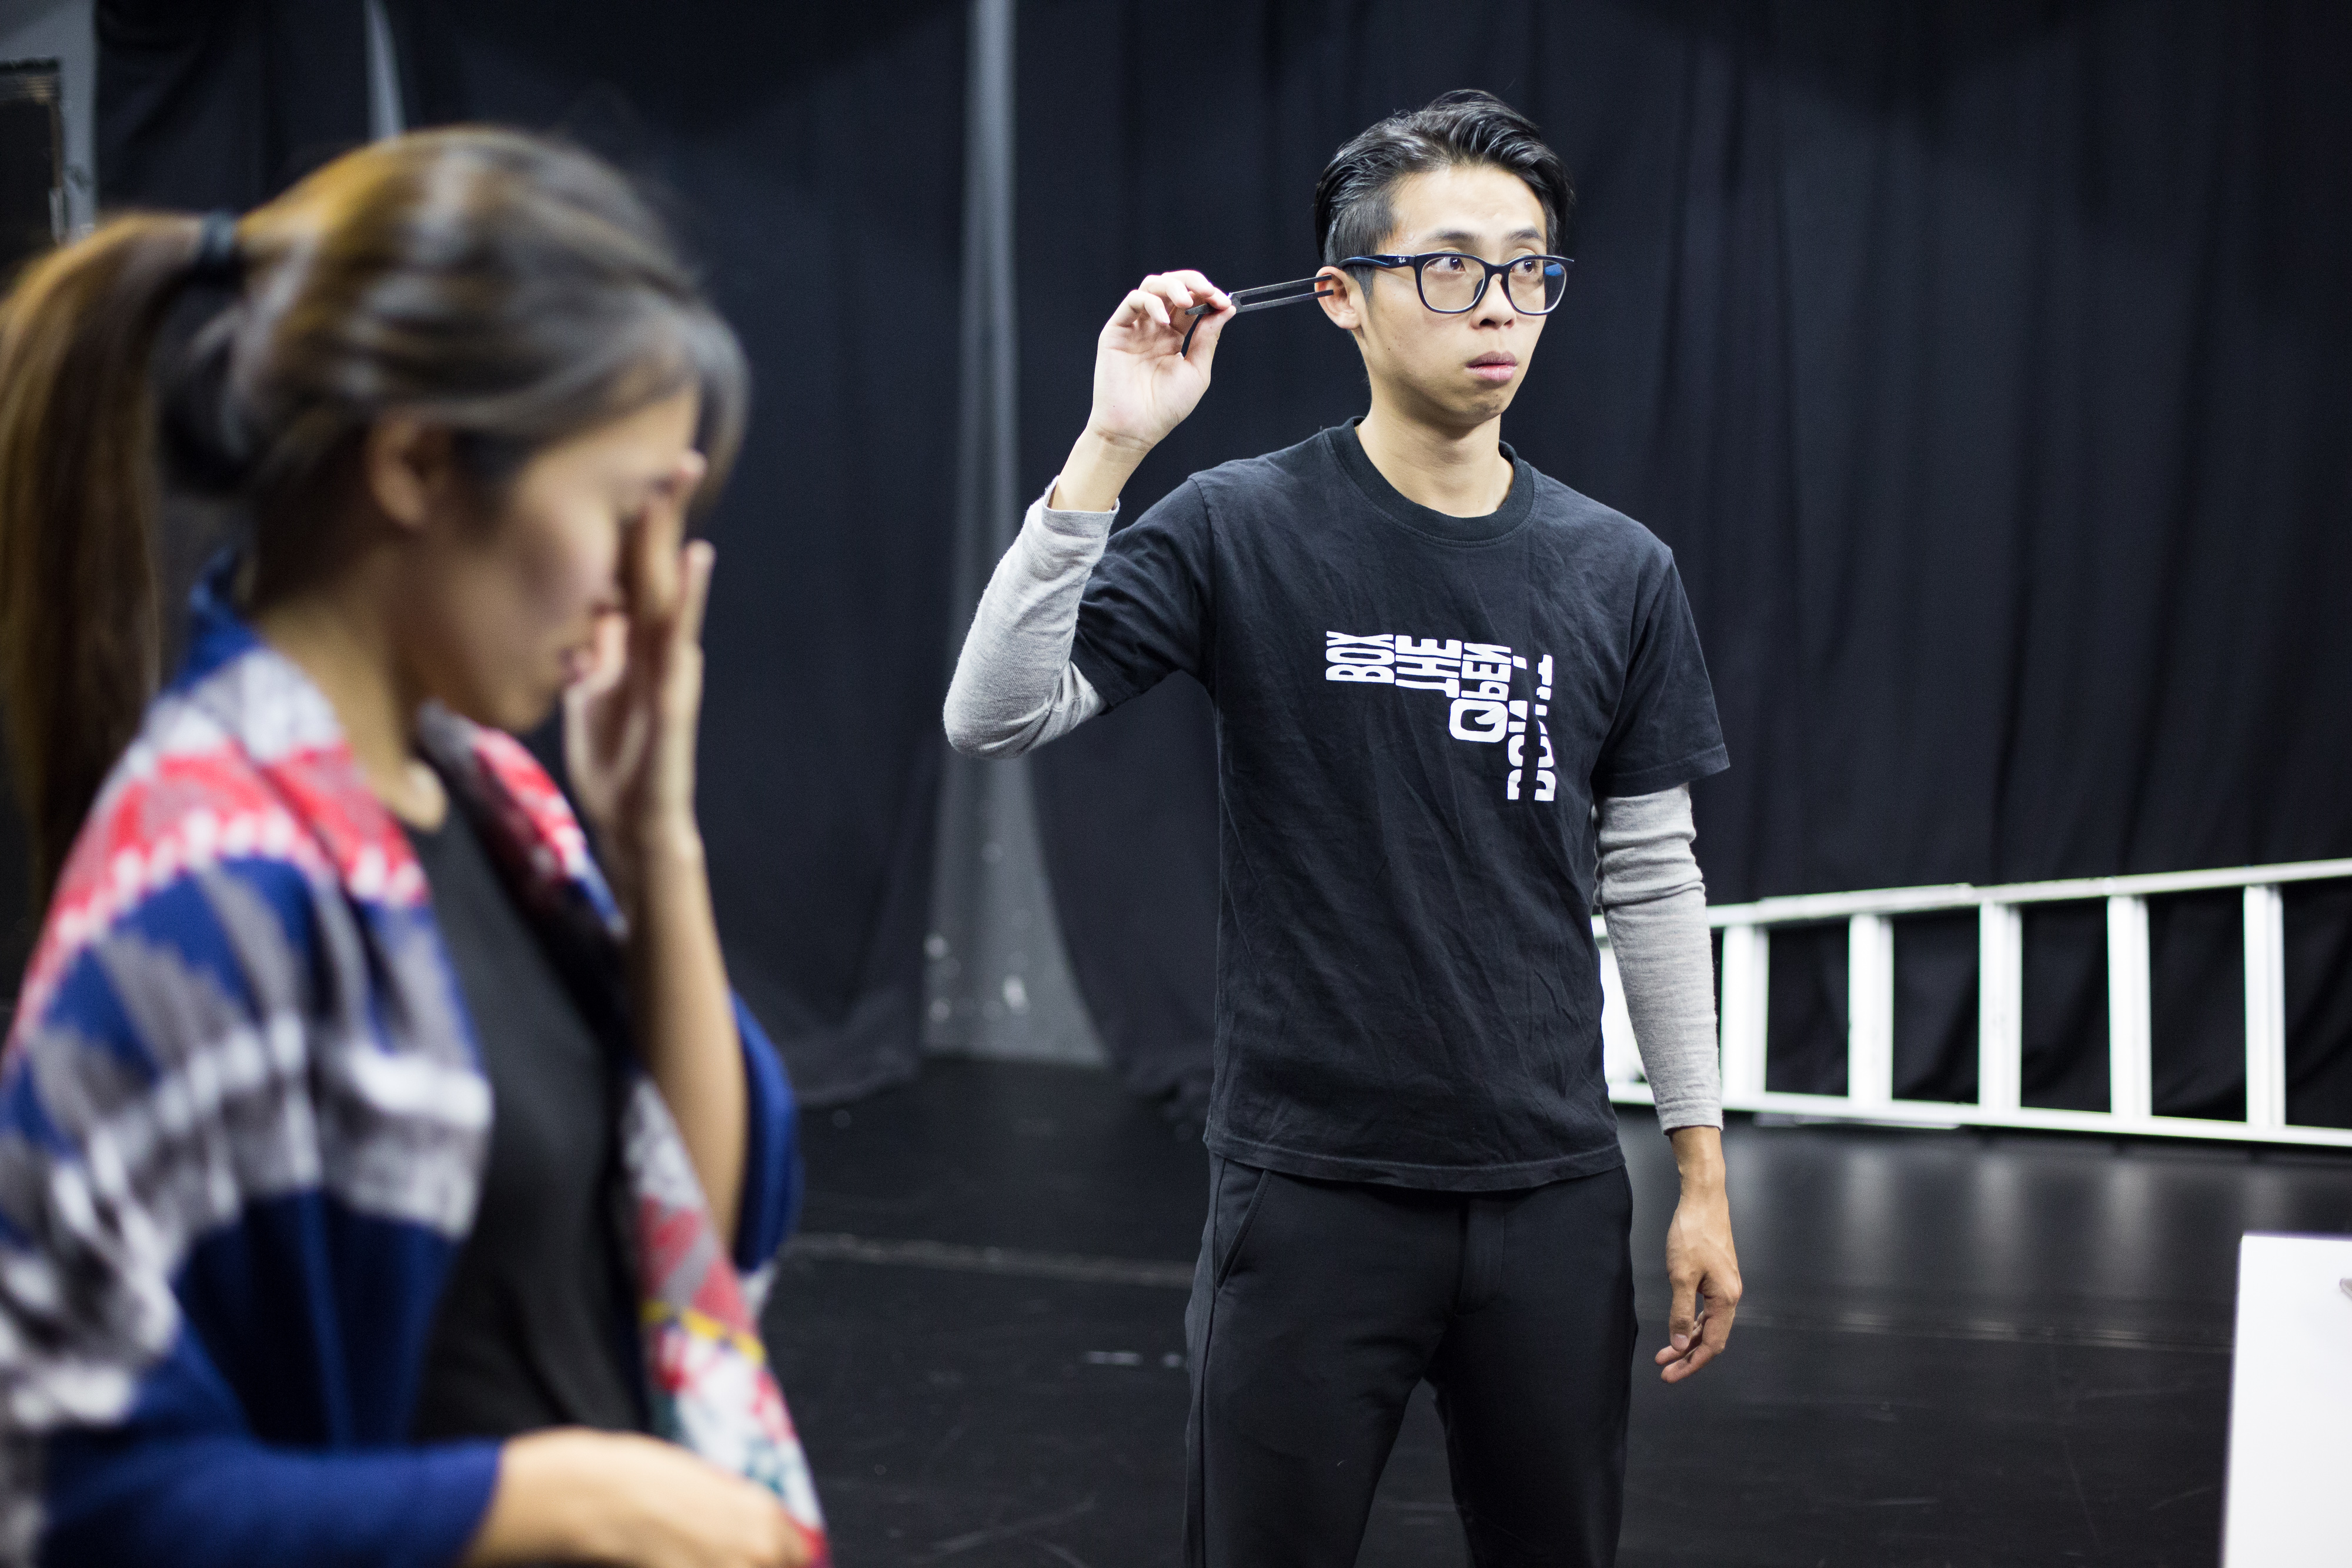 | Featuring: Chiu Chin Hei, Isabella Leung | Tagged as: Polyphonic Song: Voice and Theatre Practice | Photo: Ivor Houlker |  (Rooftop Productions • Hong Kong Theatre Company)